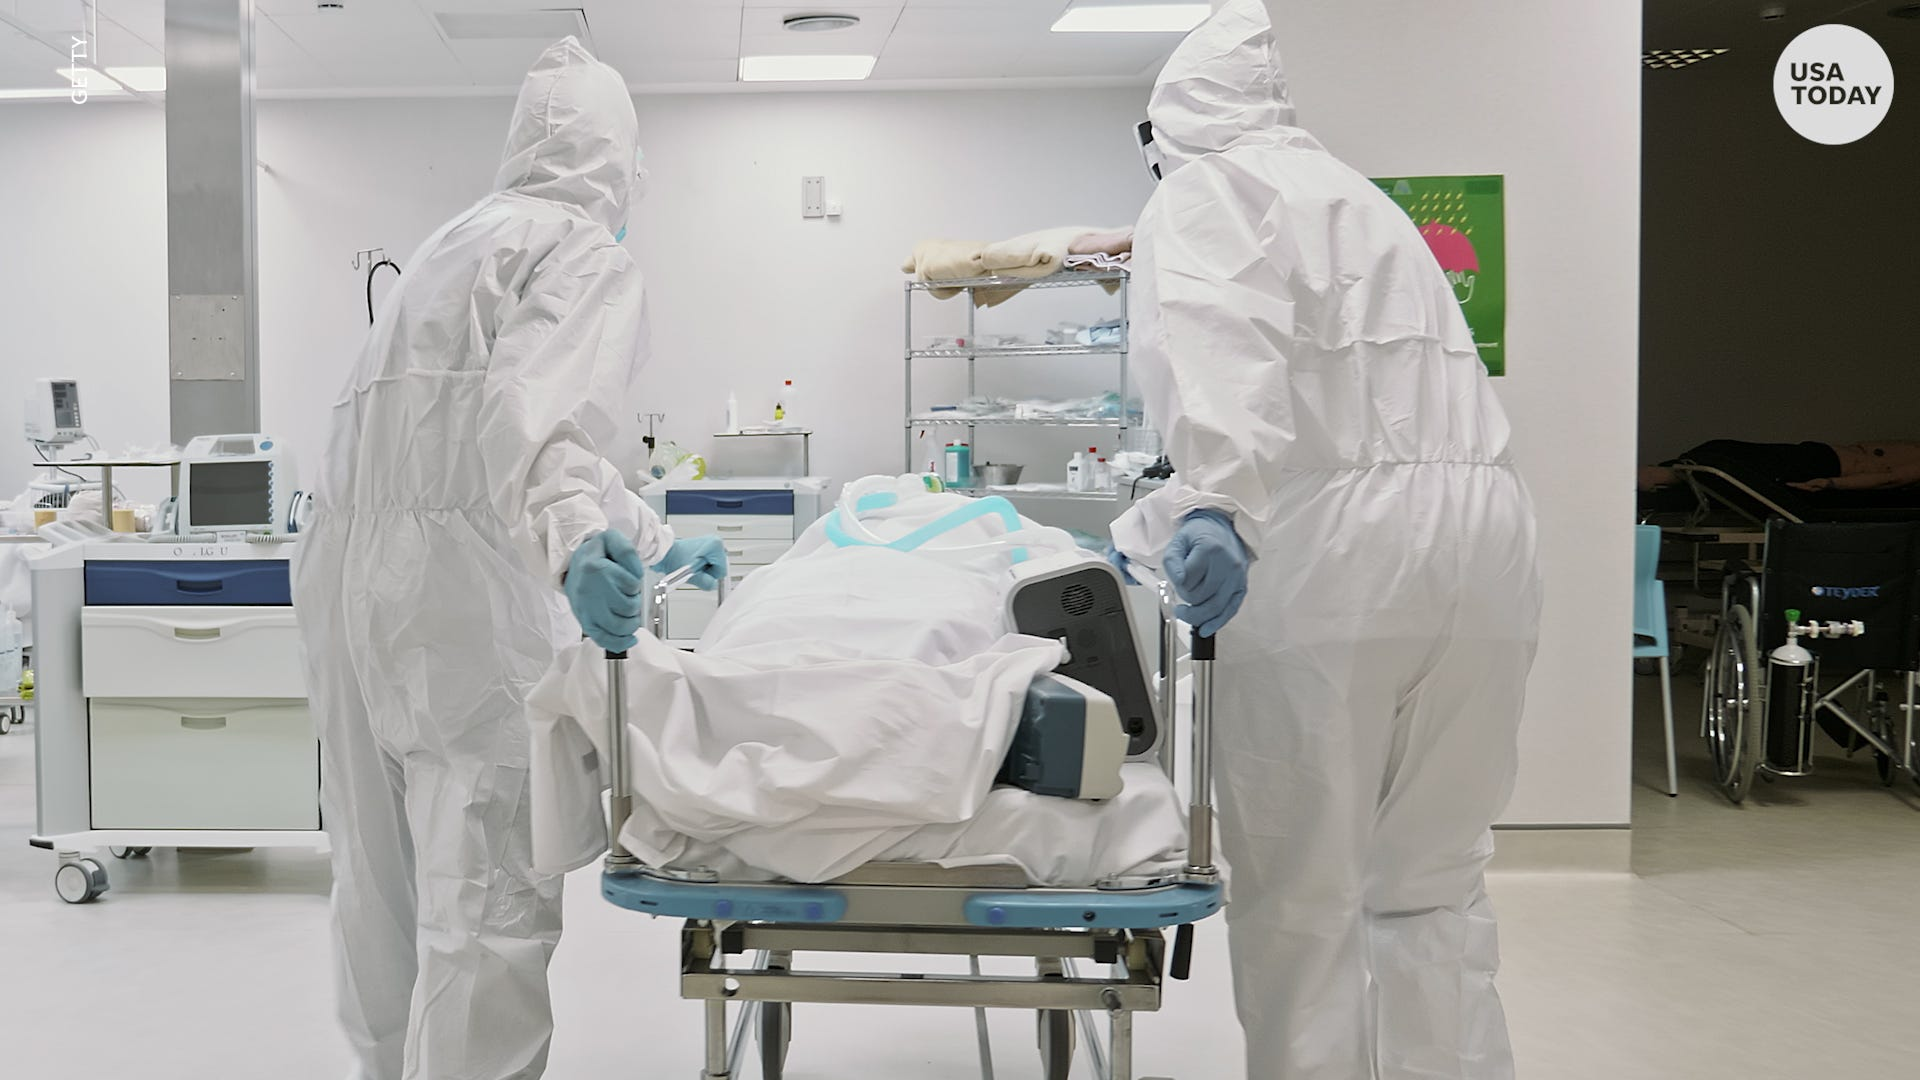 COVID-19 deaths: A look at who is dying from the coronavirus in Southwest Florida 1